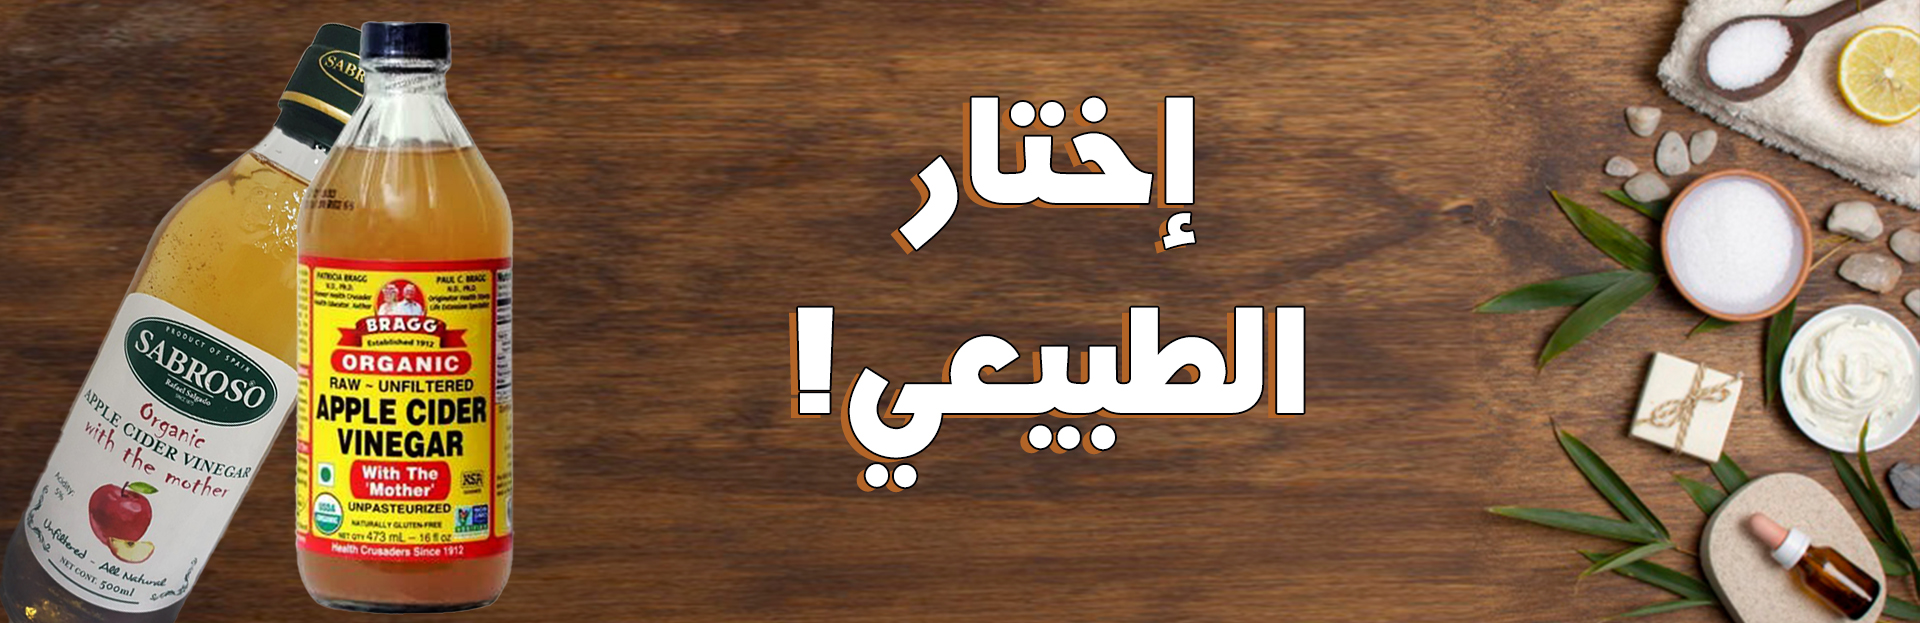 Homepage1 Slider Arabic